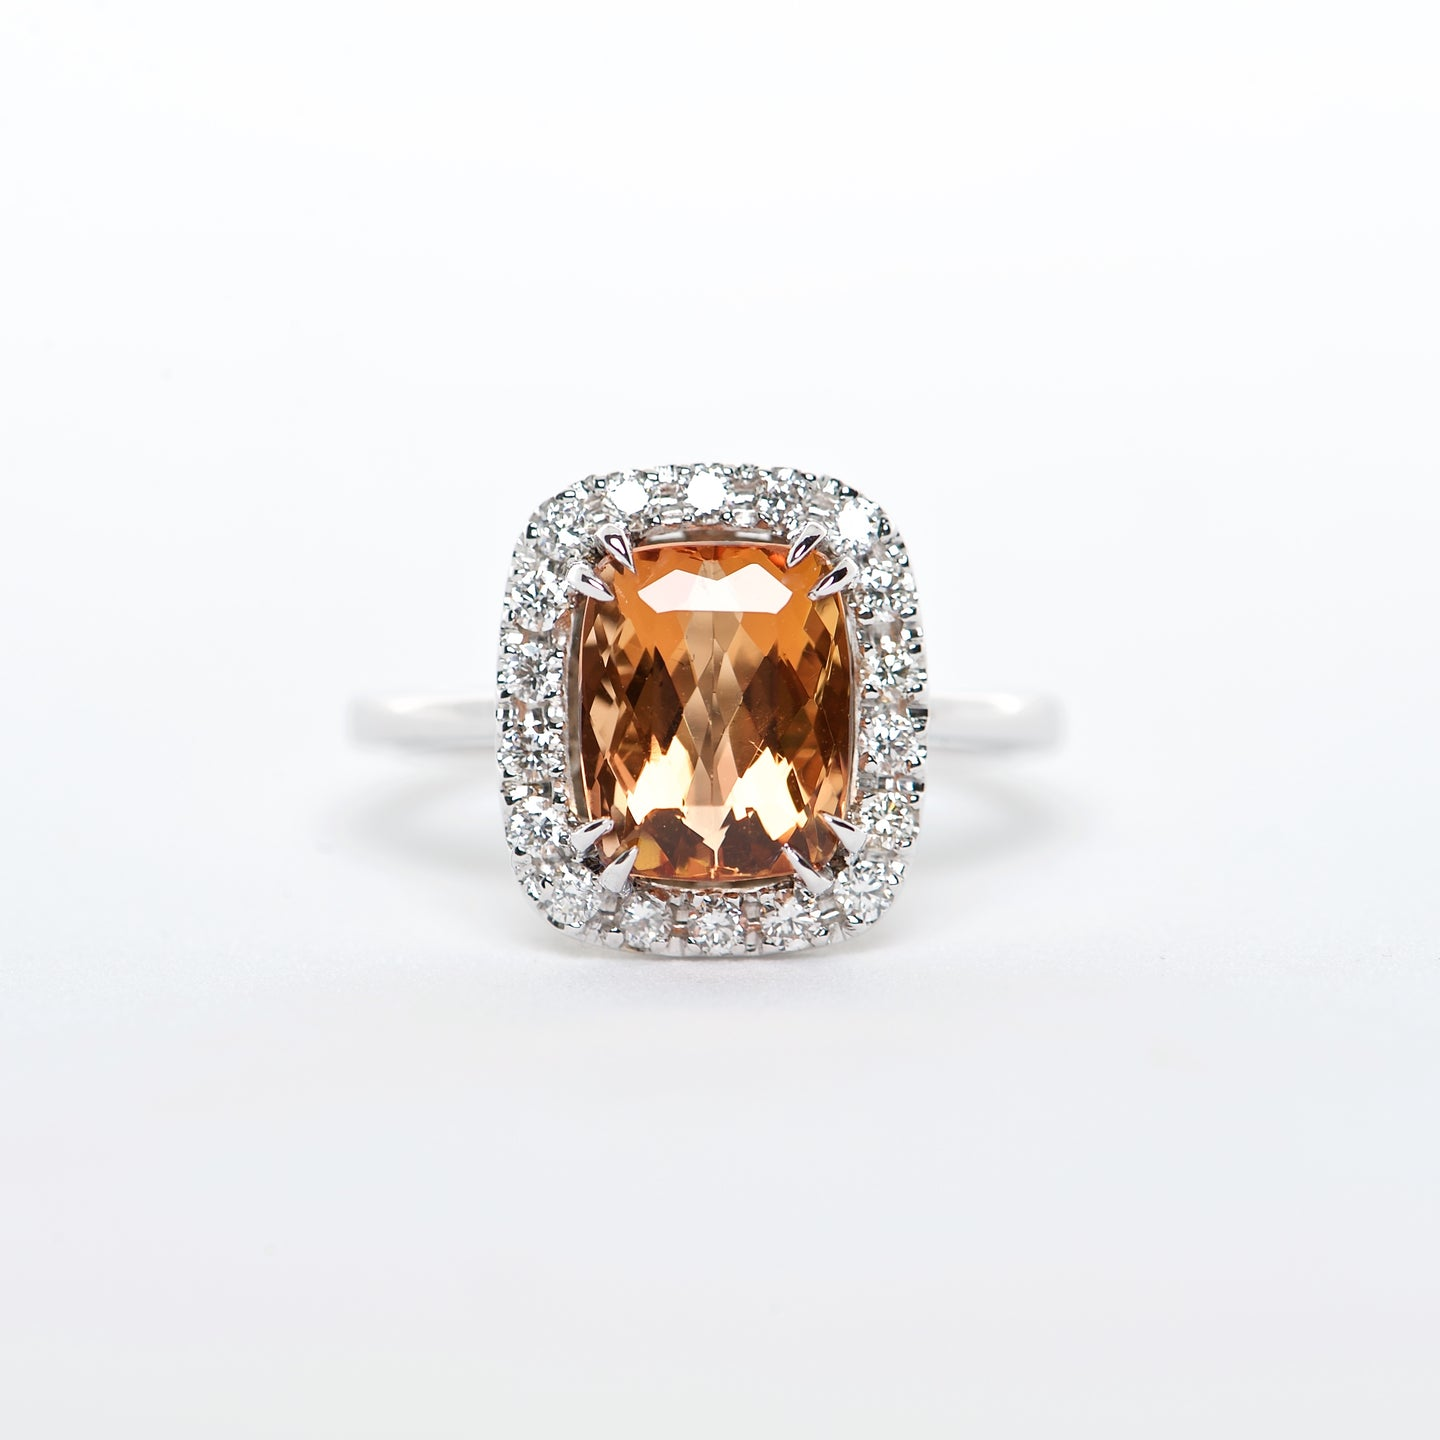 The Serena - 18K Imperial Topaz and Diamond ring